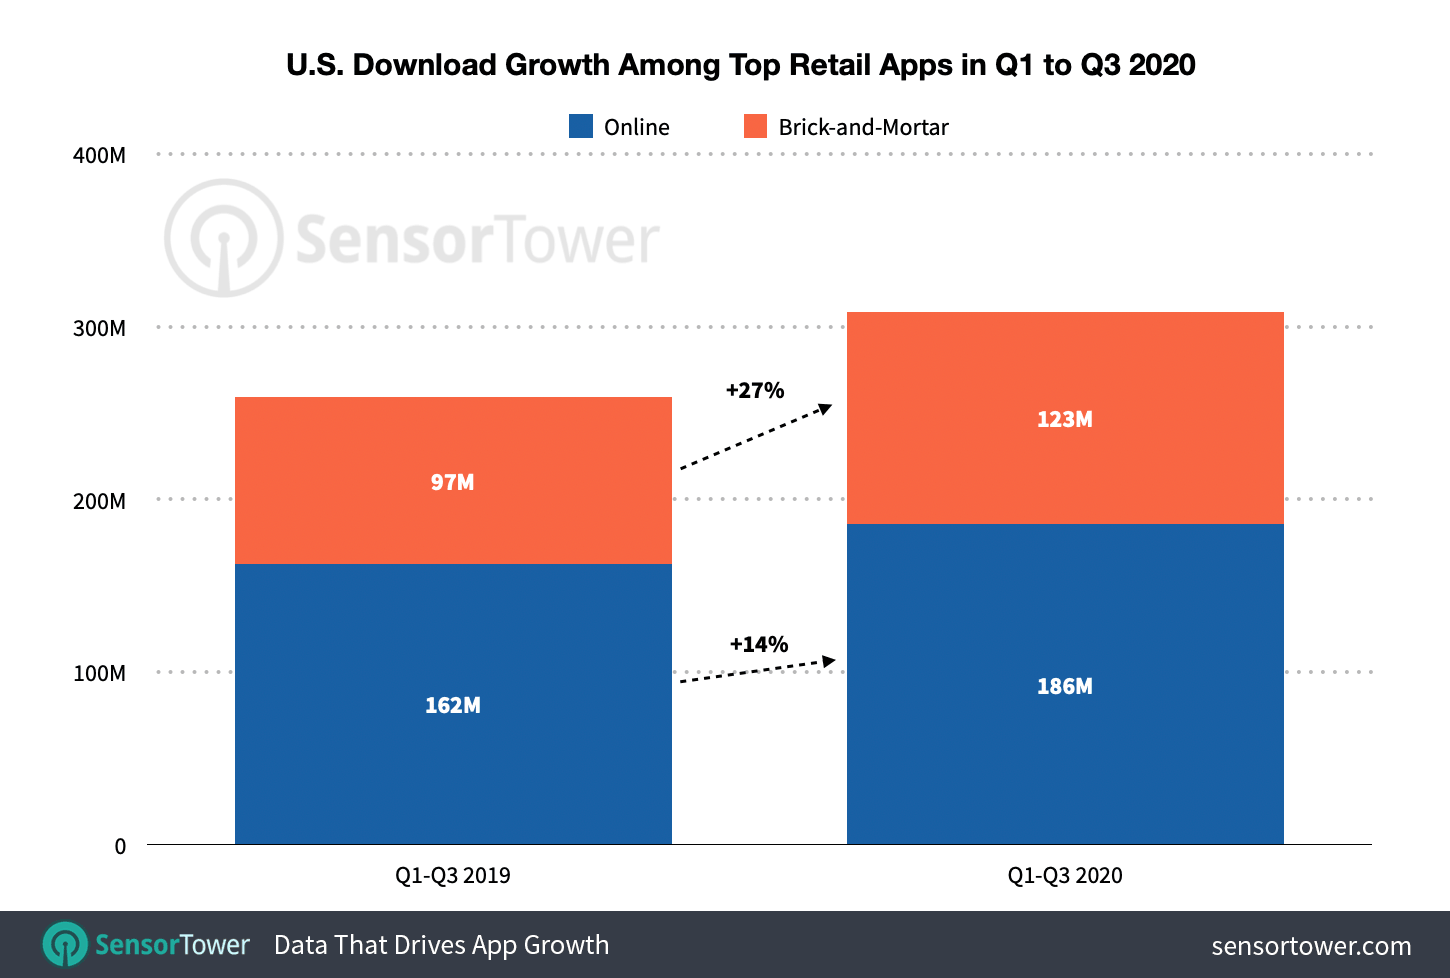 In the first three quarters of 2020, the top U.S. B&M apps grew 27% year-over-year, while online retail apps grew 14% year-over-year